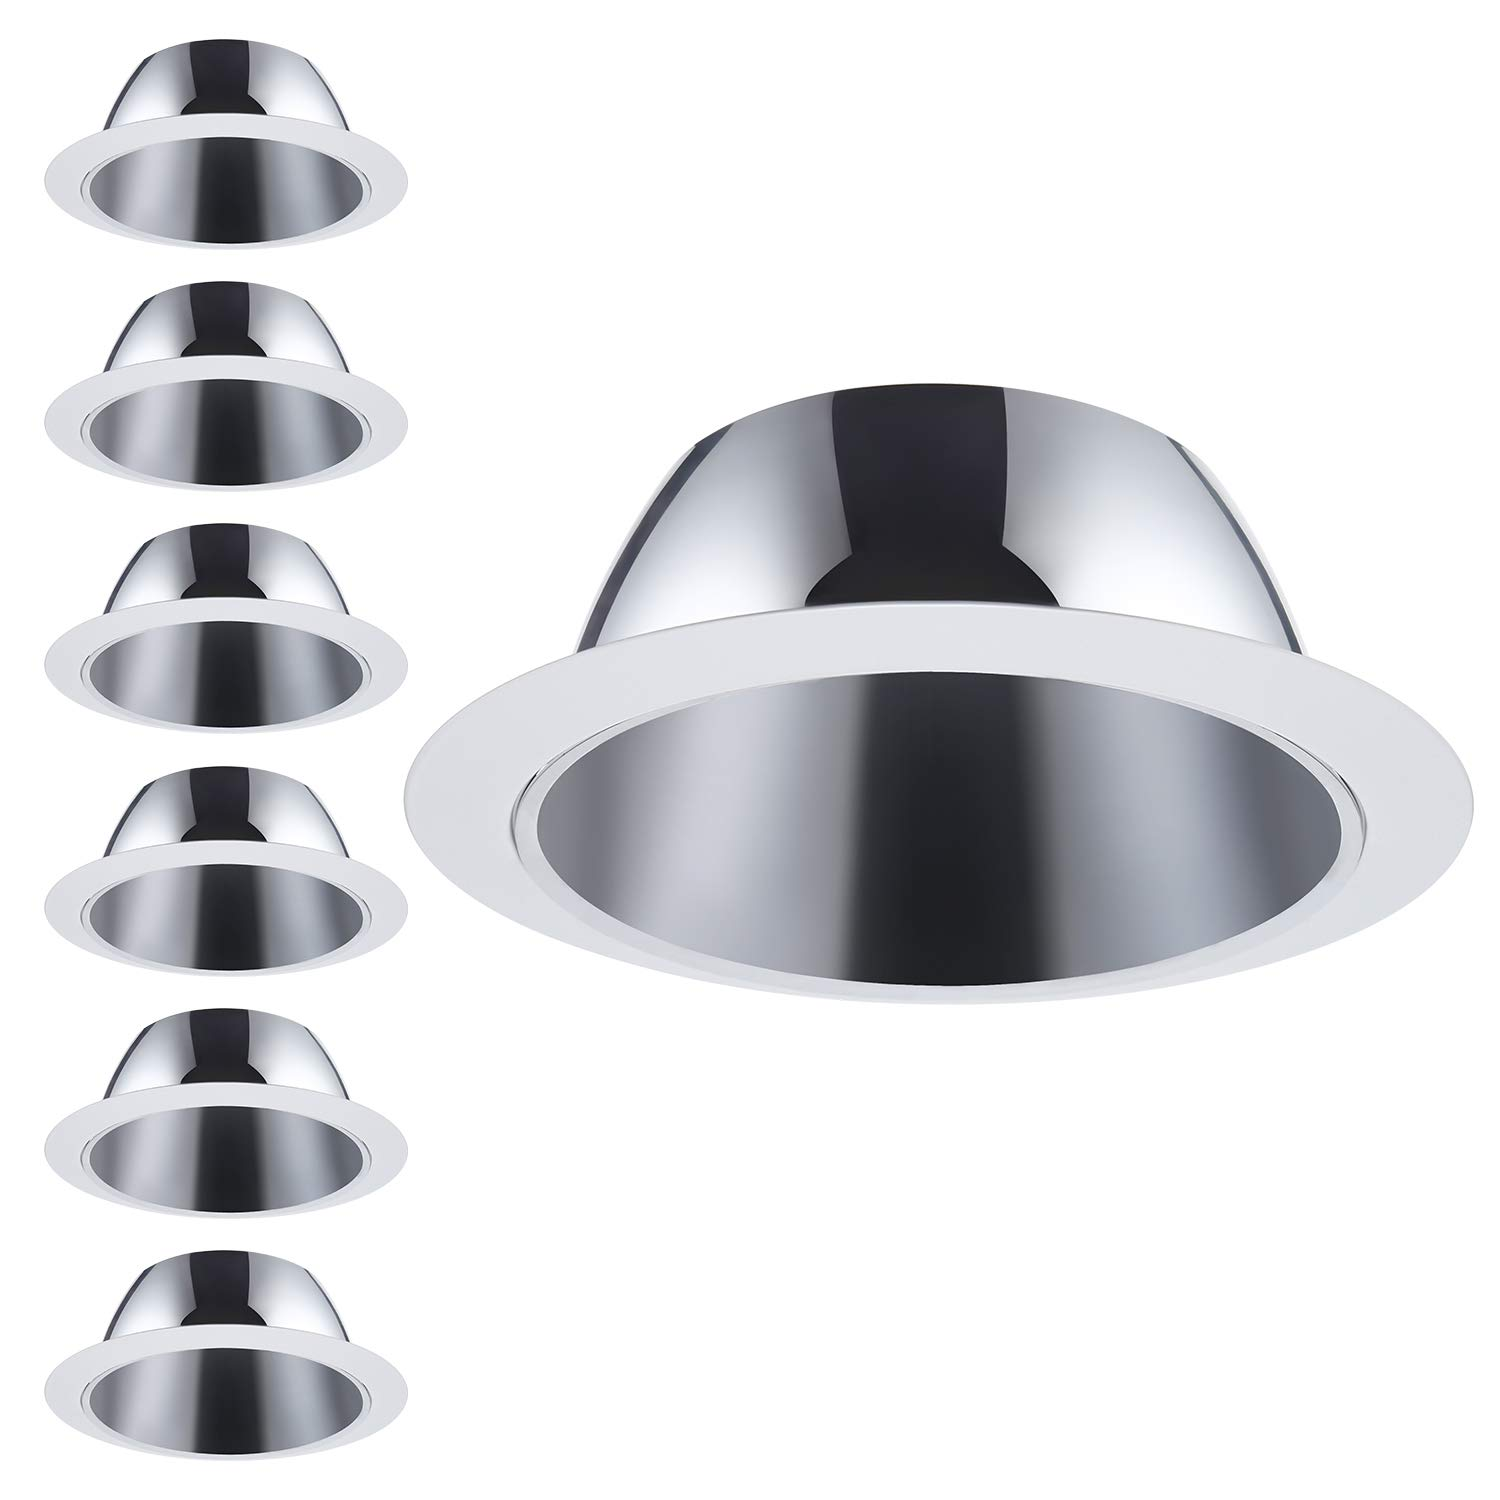 6 Pack 6 Inch Recessed Can Light Trim with Aluminum Reflector, for 6 inch Recessed Can, Detachable Iron Ring Included